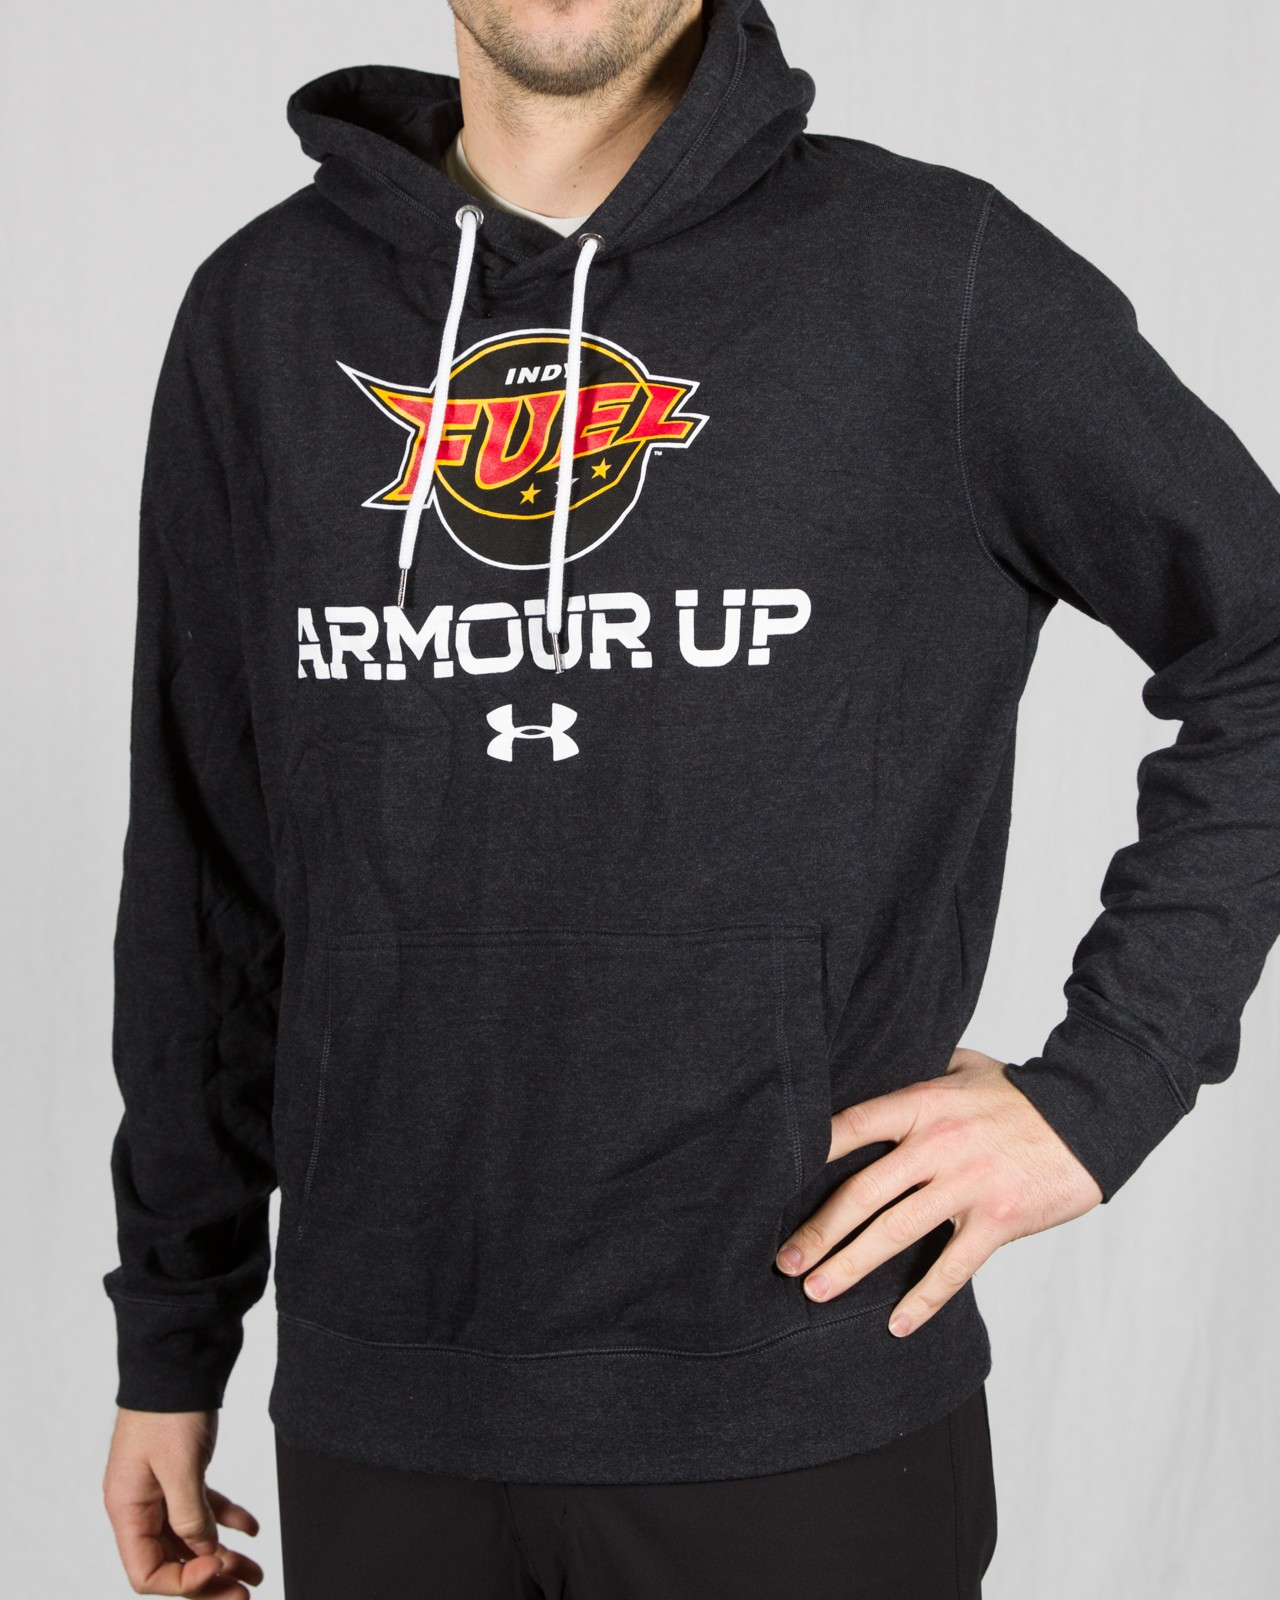 Armour Up Hoodie